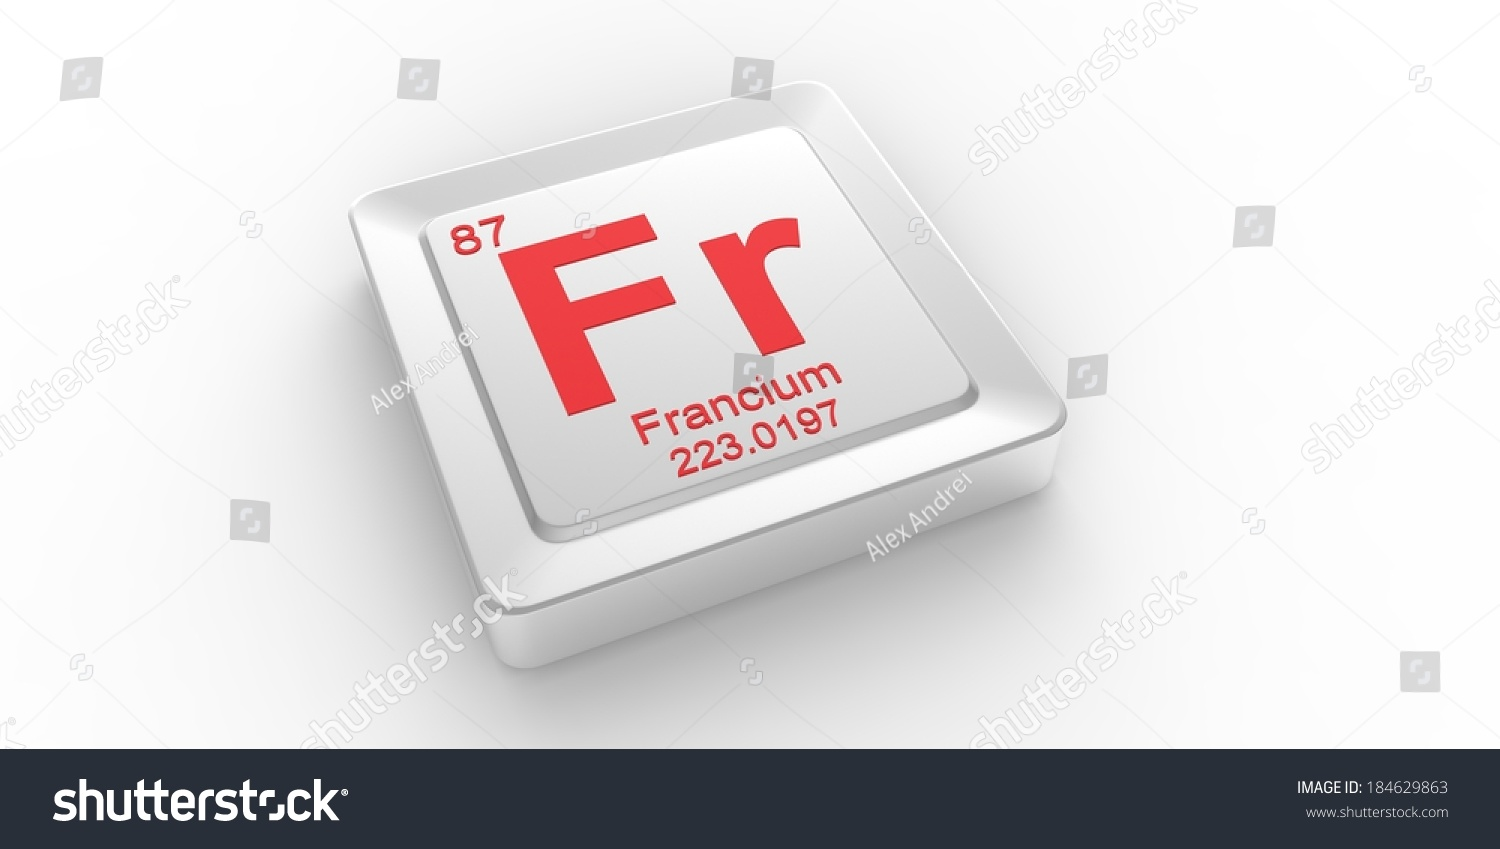 Fr Symbol 87 Material Francium Chemical Stock Illustration 184629863